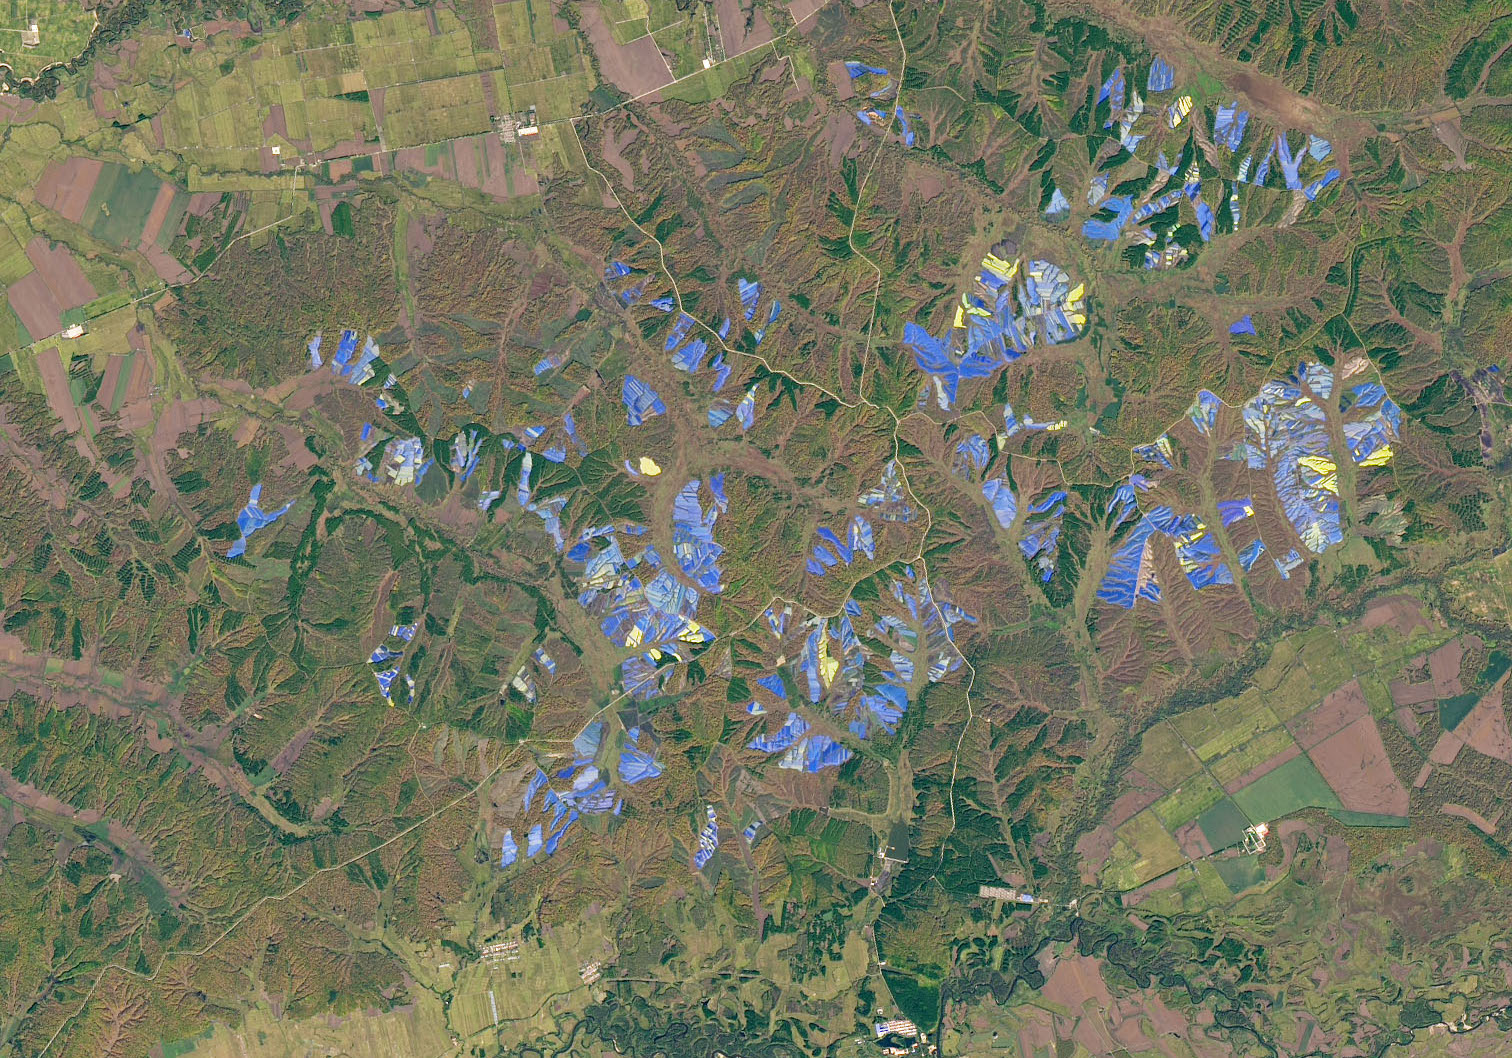 Today's Image of the Day comes courtesy of the NASA Earth Observatory and features a look at ginseng farms in northern China.